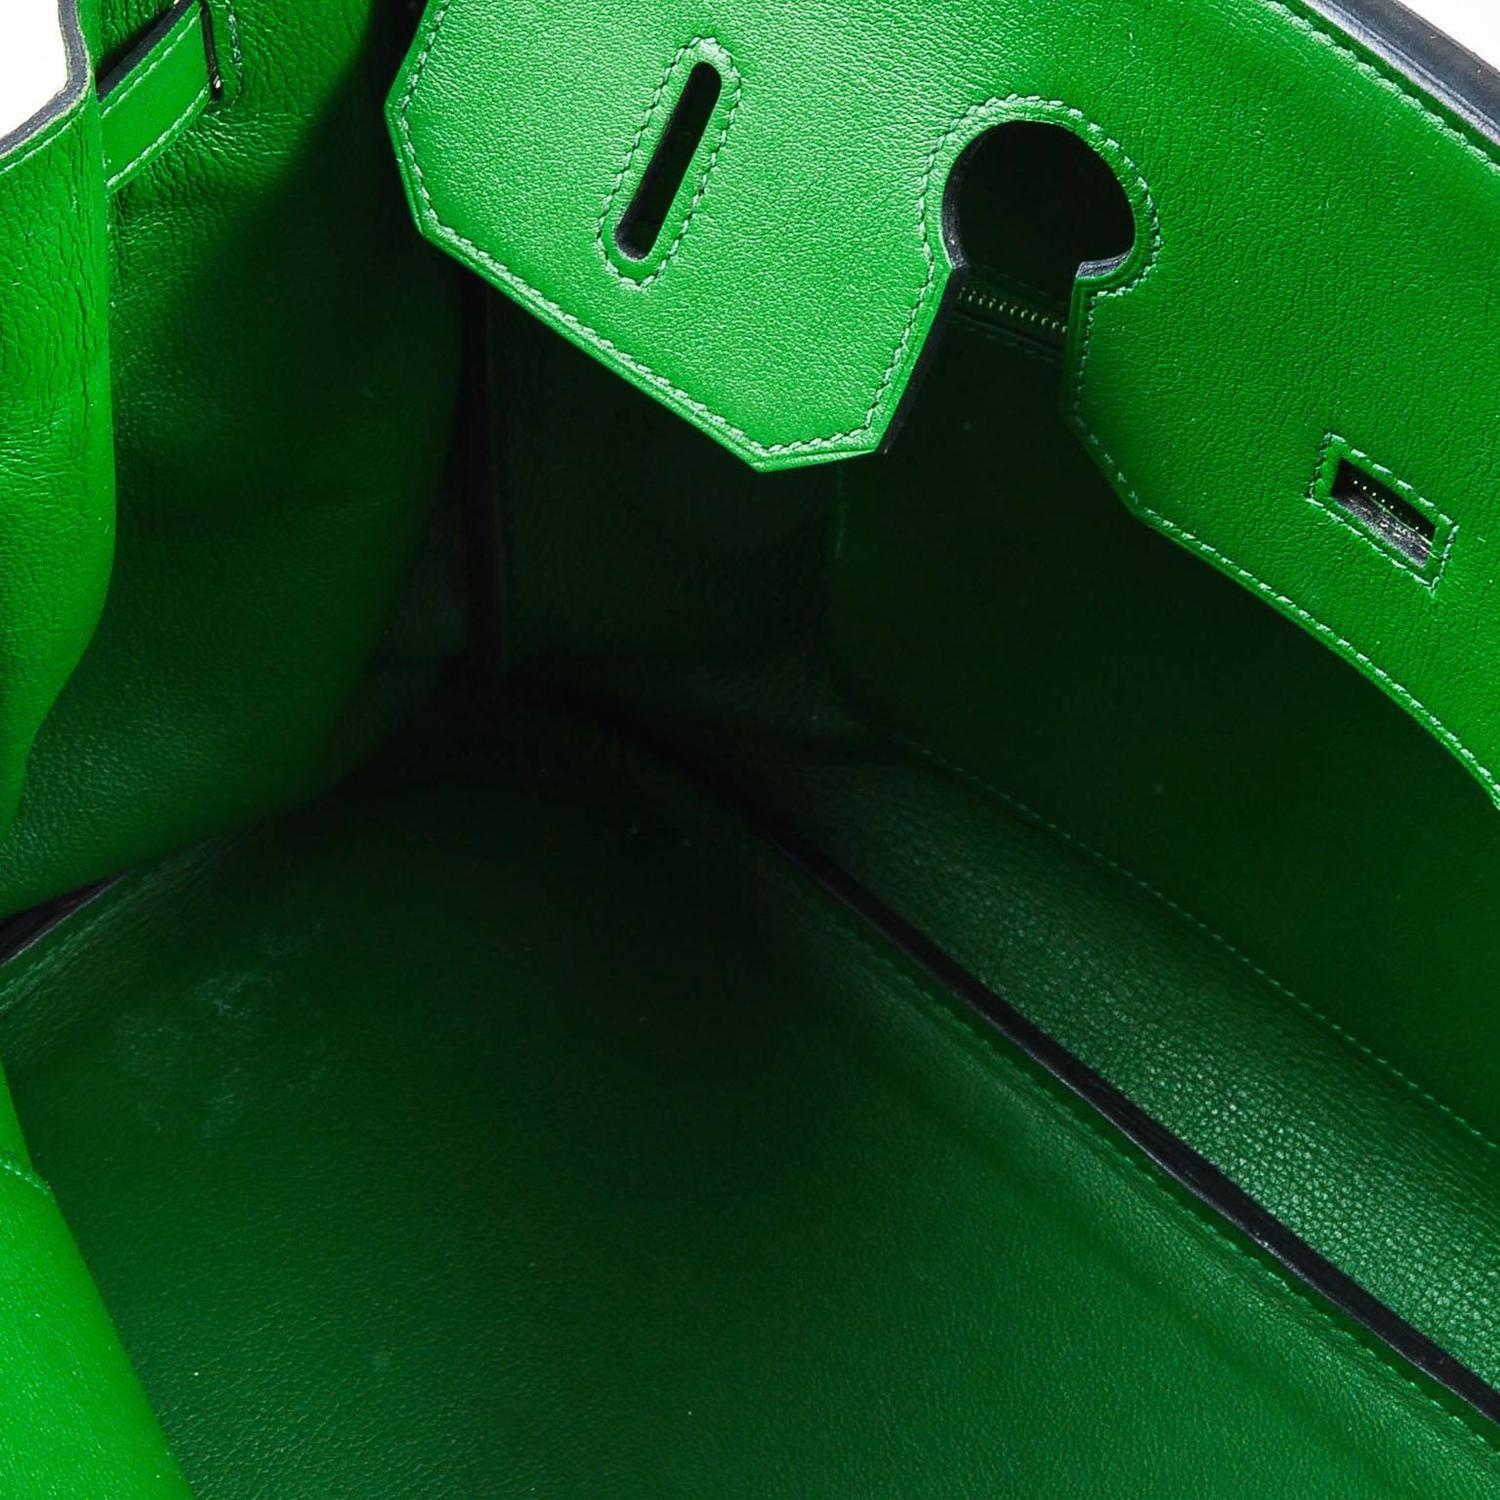 Hermes Iconic Green SHW Vert Bengale Veau Swift Leather 35cm ...